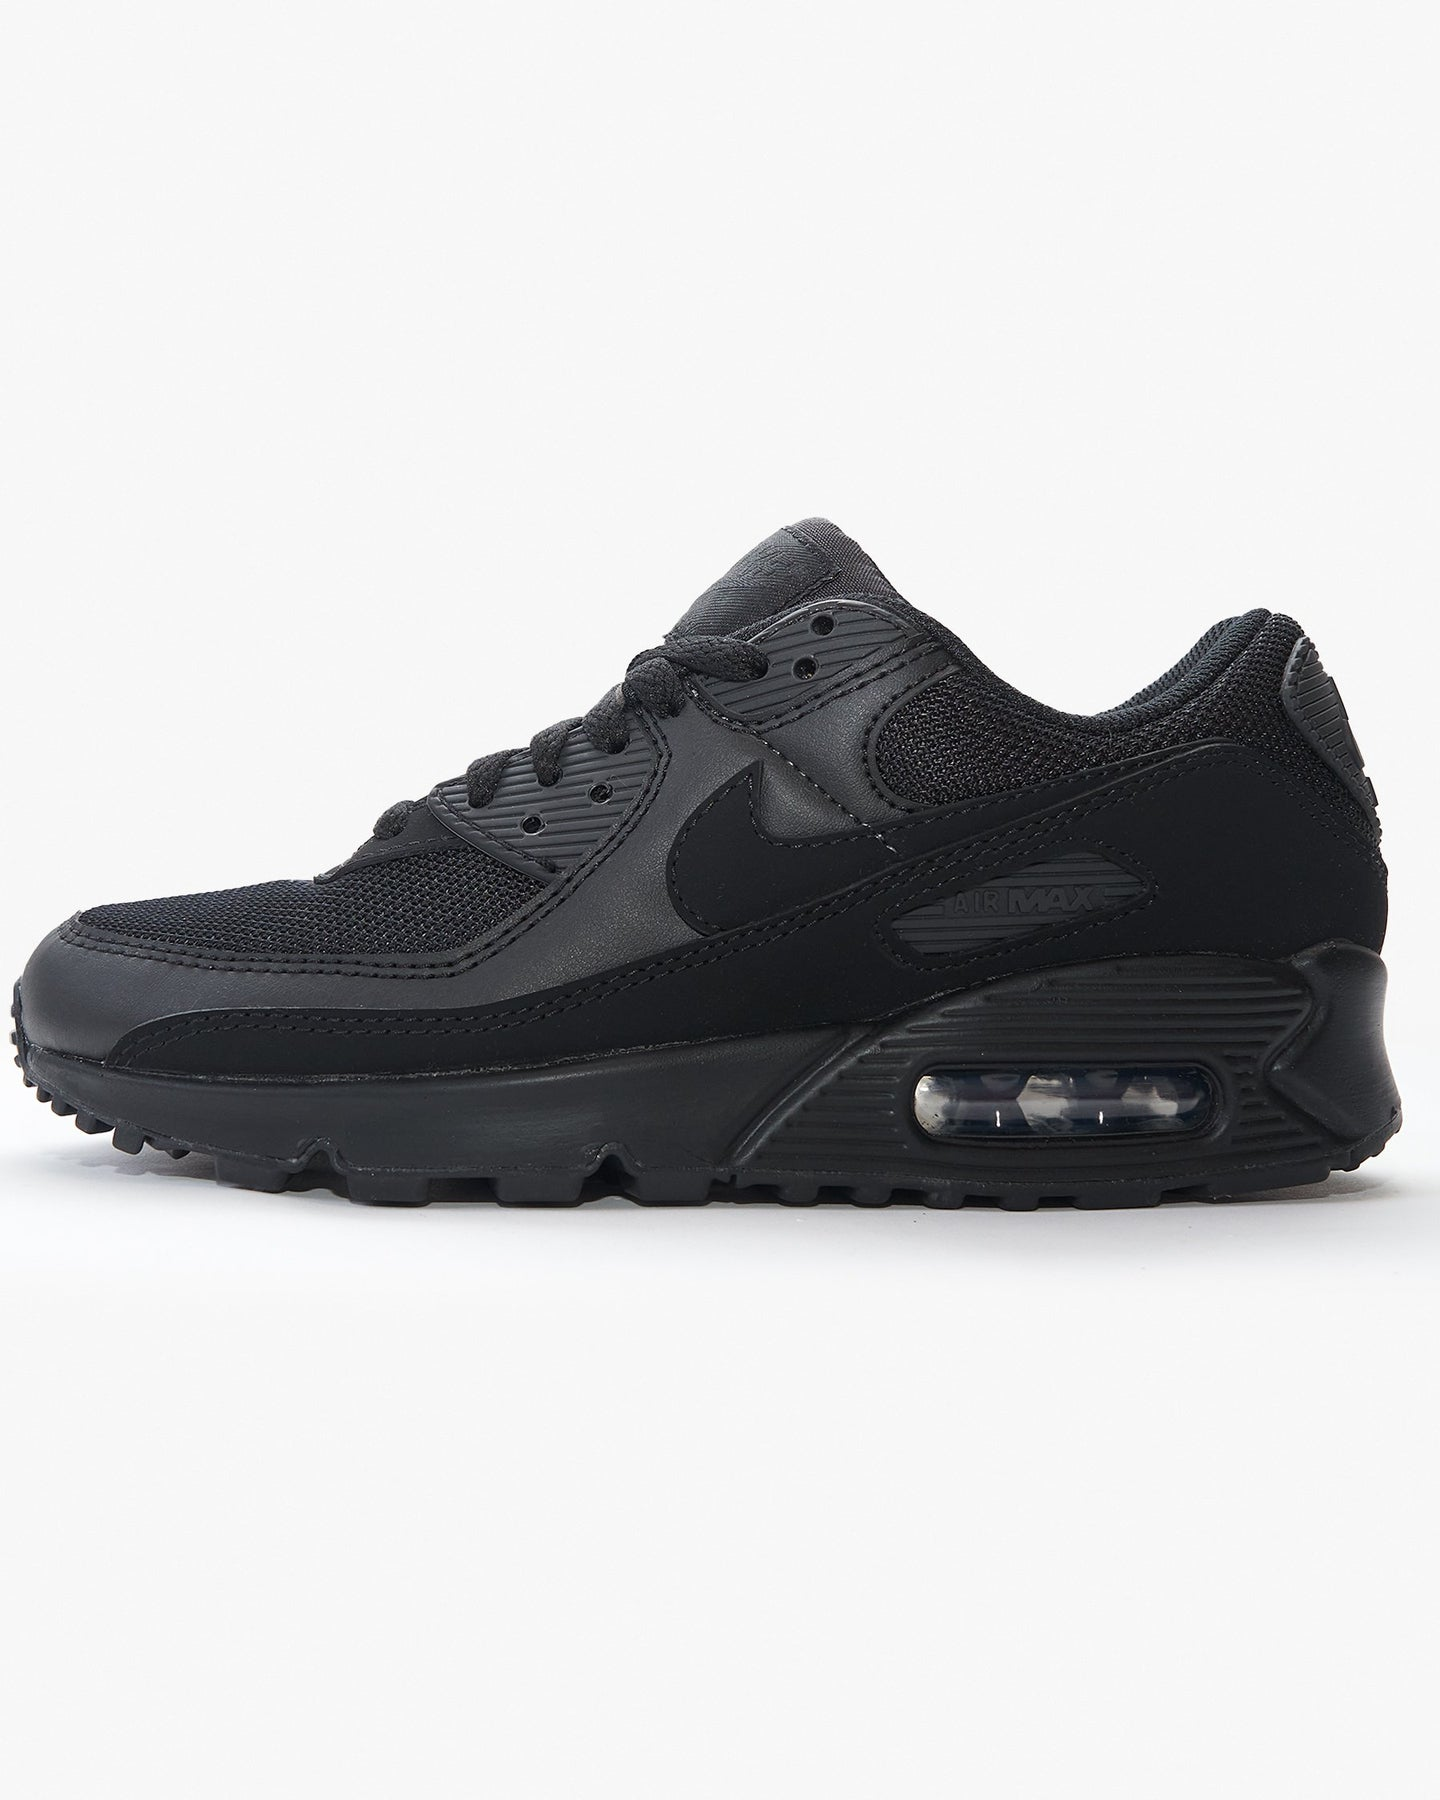 Nike Wmns Air Max 90 - Black / Black UK 3 CQ25600023 193154416954 Nike Trainers